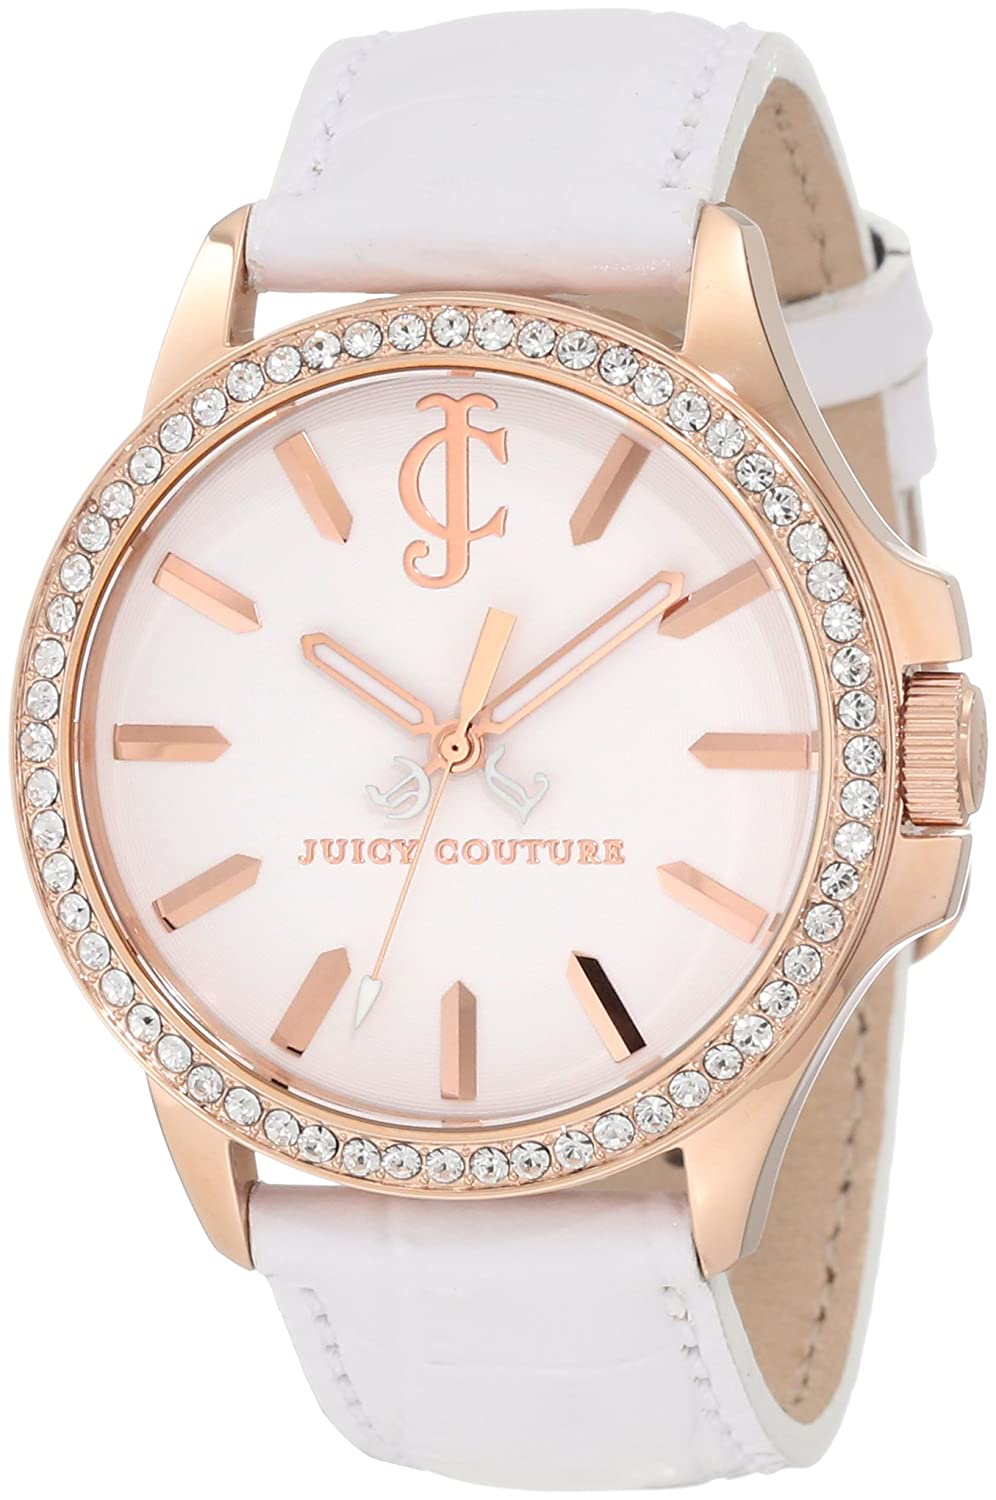 Juicy Couture Women's 1900968 Jetsetter White Leather Strap Watch moschino couture сандалии